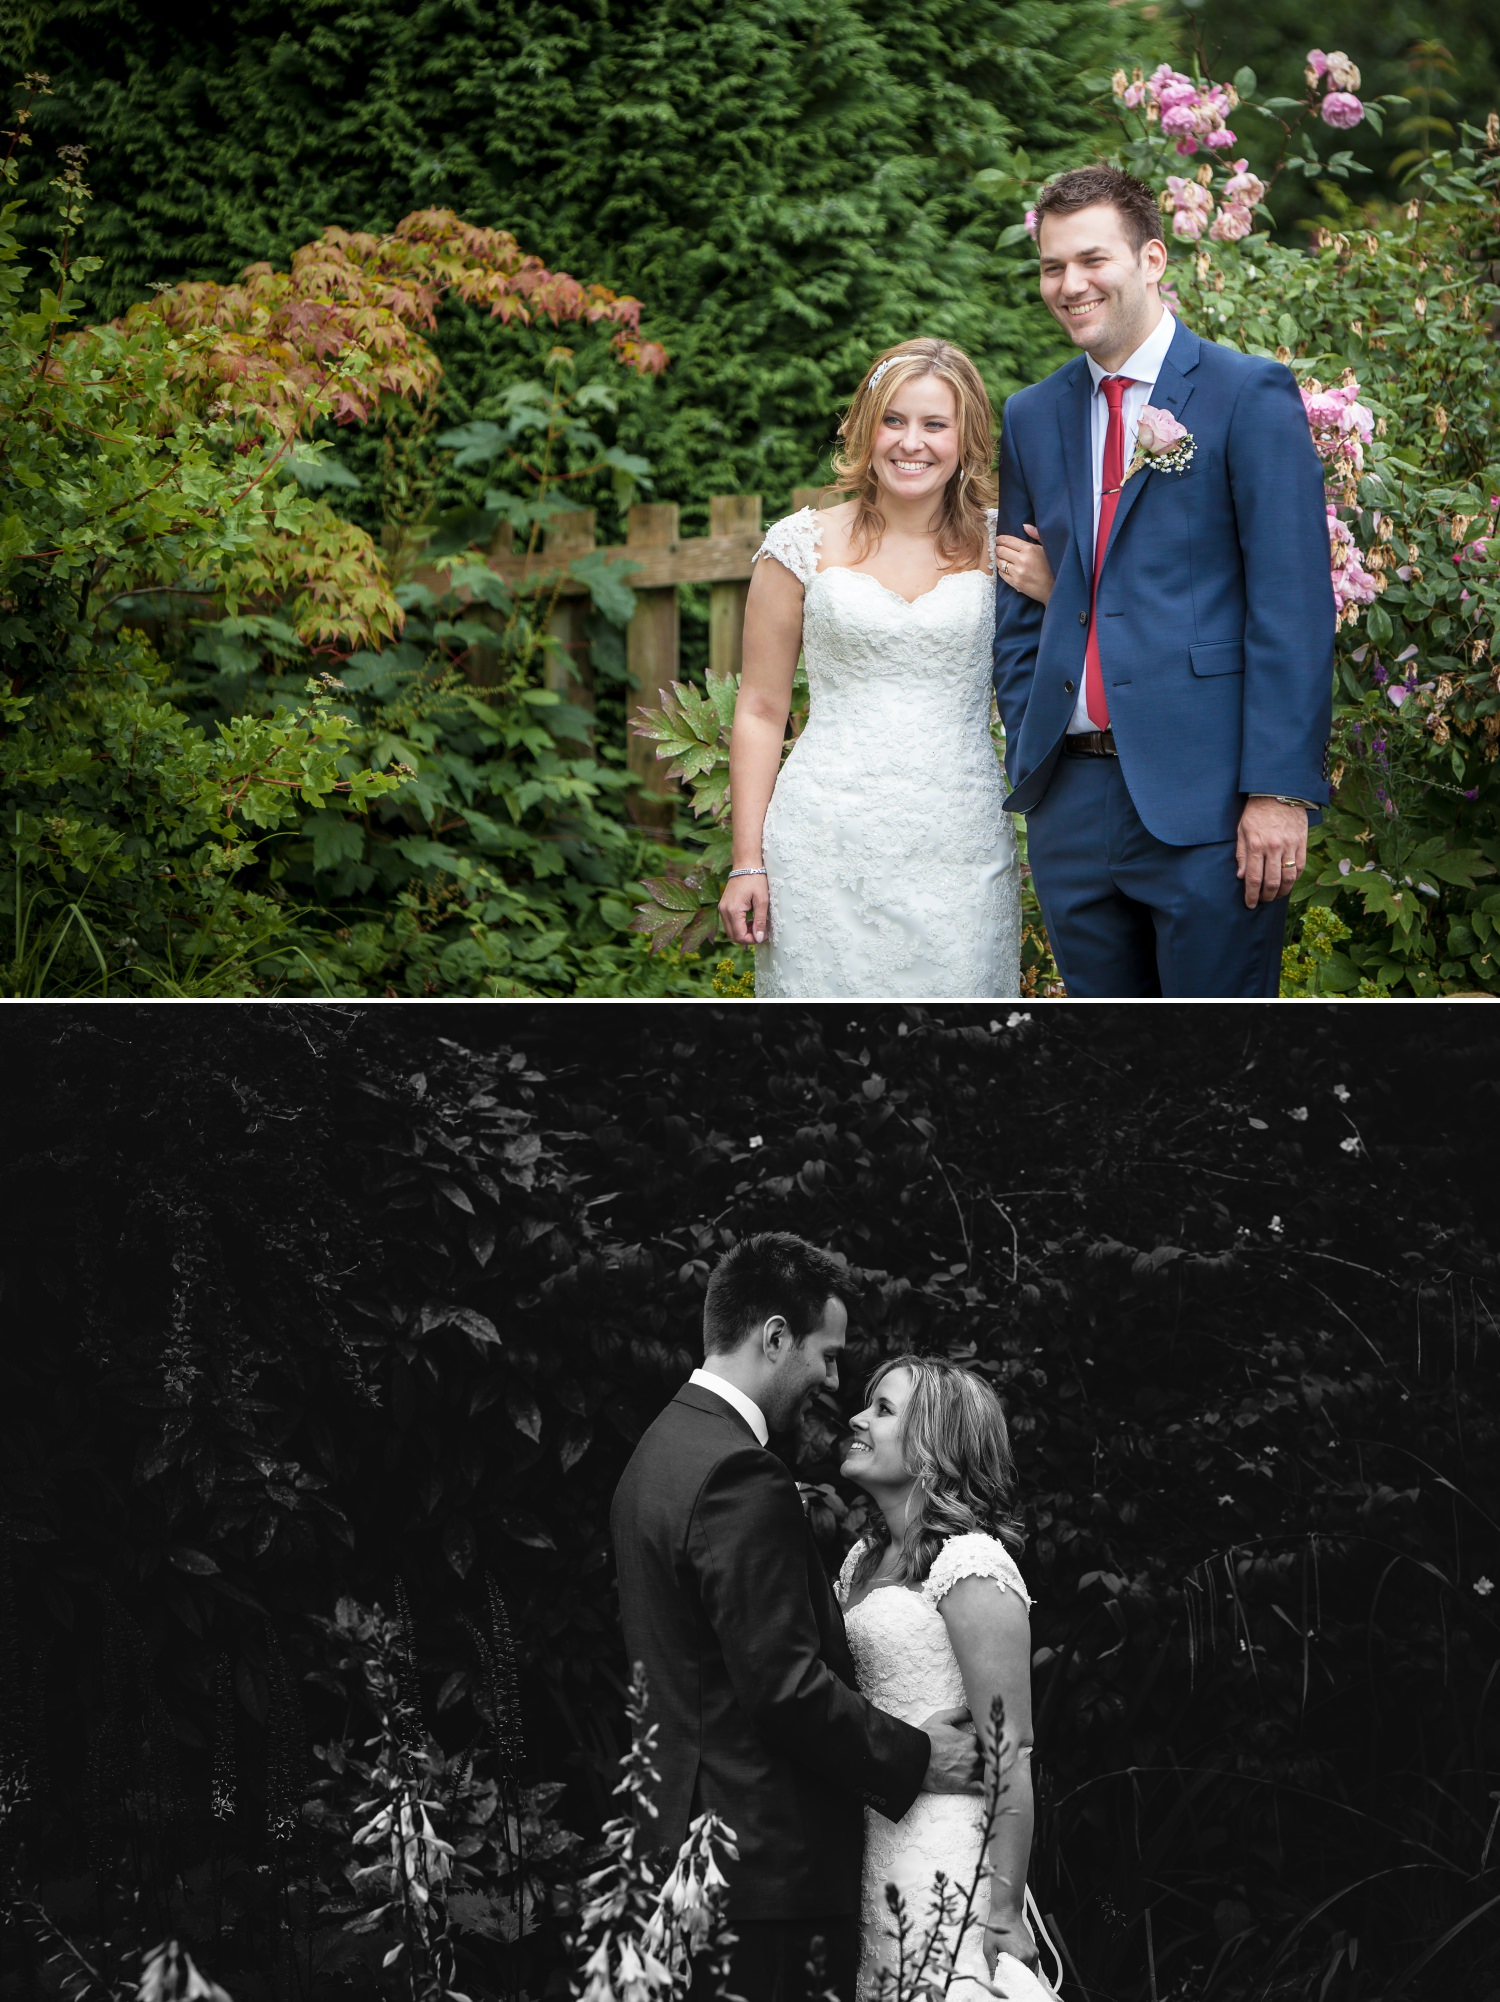 Wedding photography portraits at the Wirral wedding